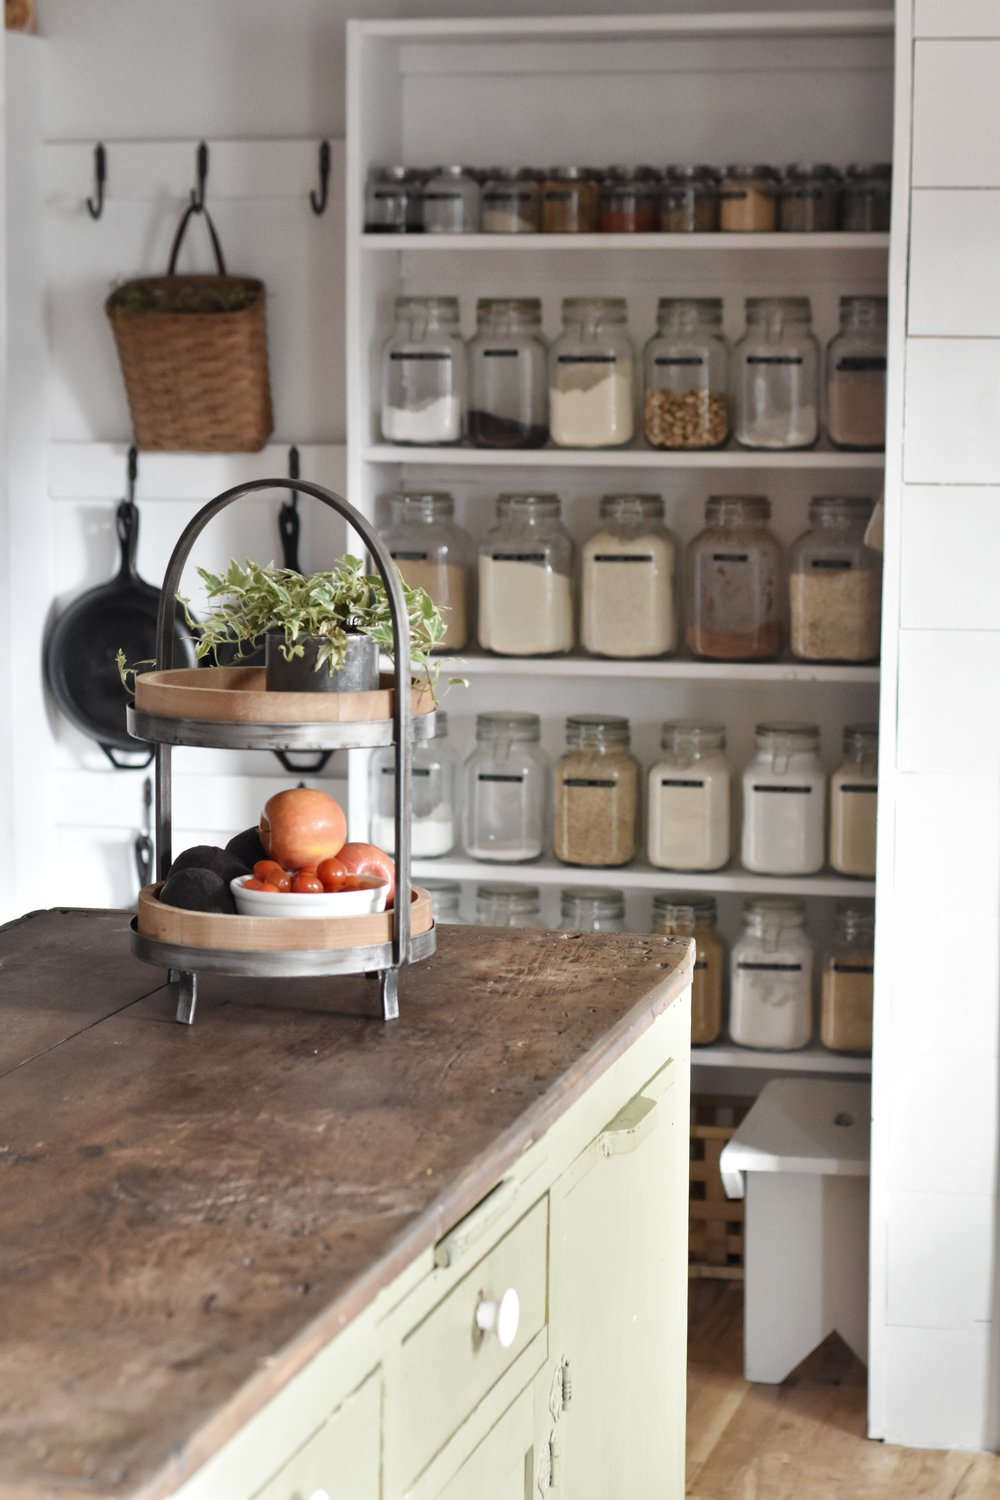 An organized, well stocked pantry for creating healthy meals. Store spices and herbs in glass jars for a sustainble, zero waste lifestyle | Rocky Hedge Farm